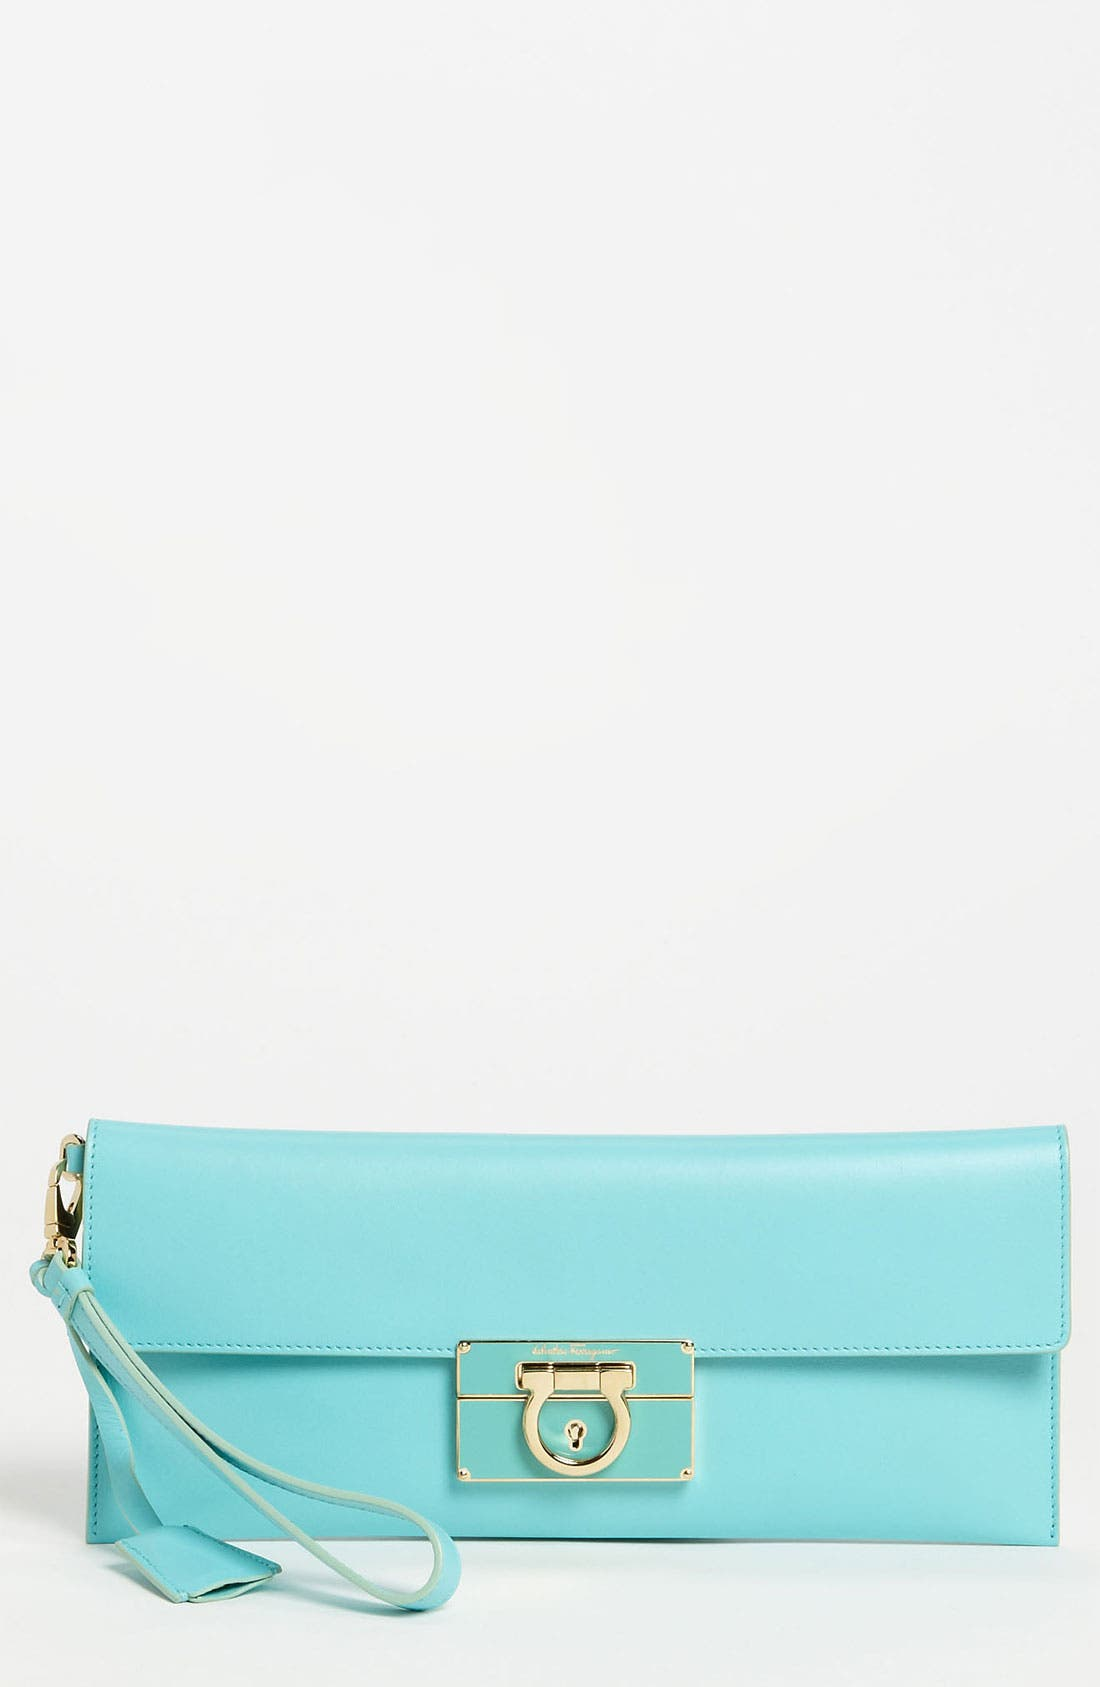 Alternate Image 1 Selected - Salvatore Ferragamo 'Afef' Leather Envelope Clutch